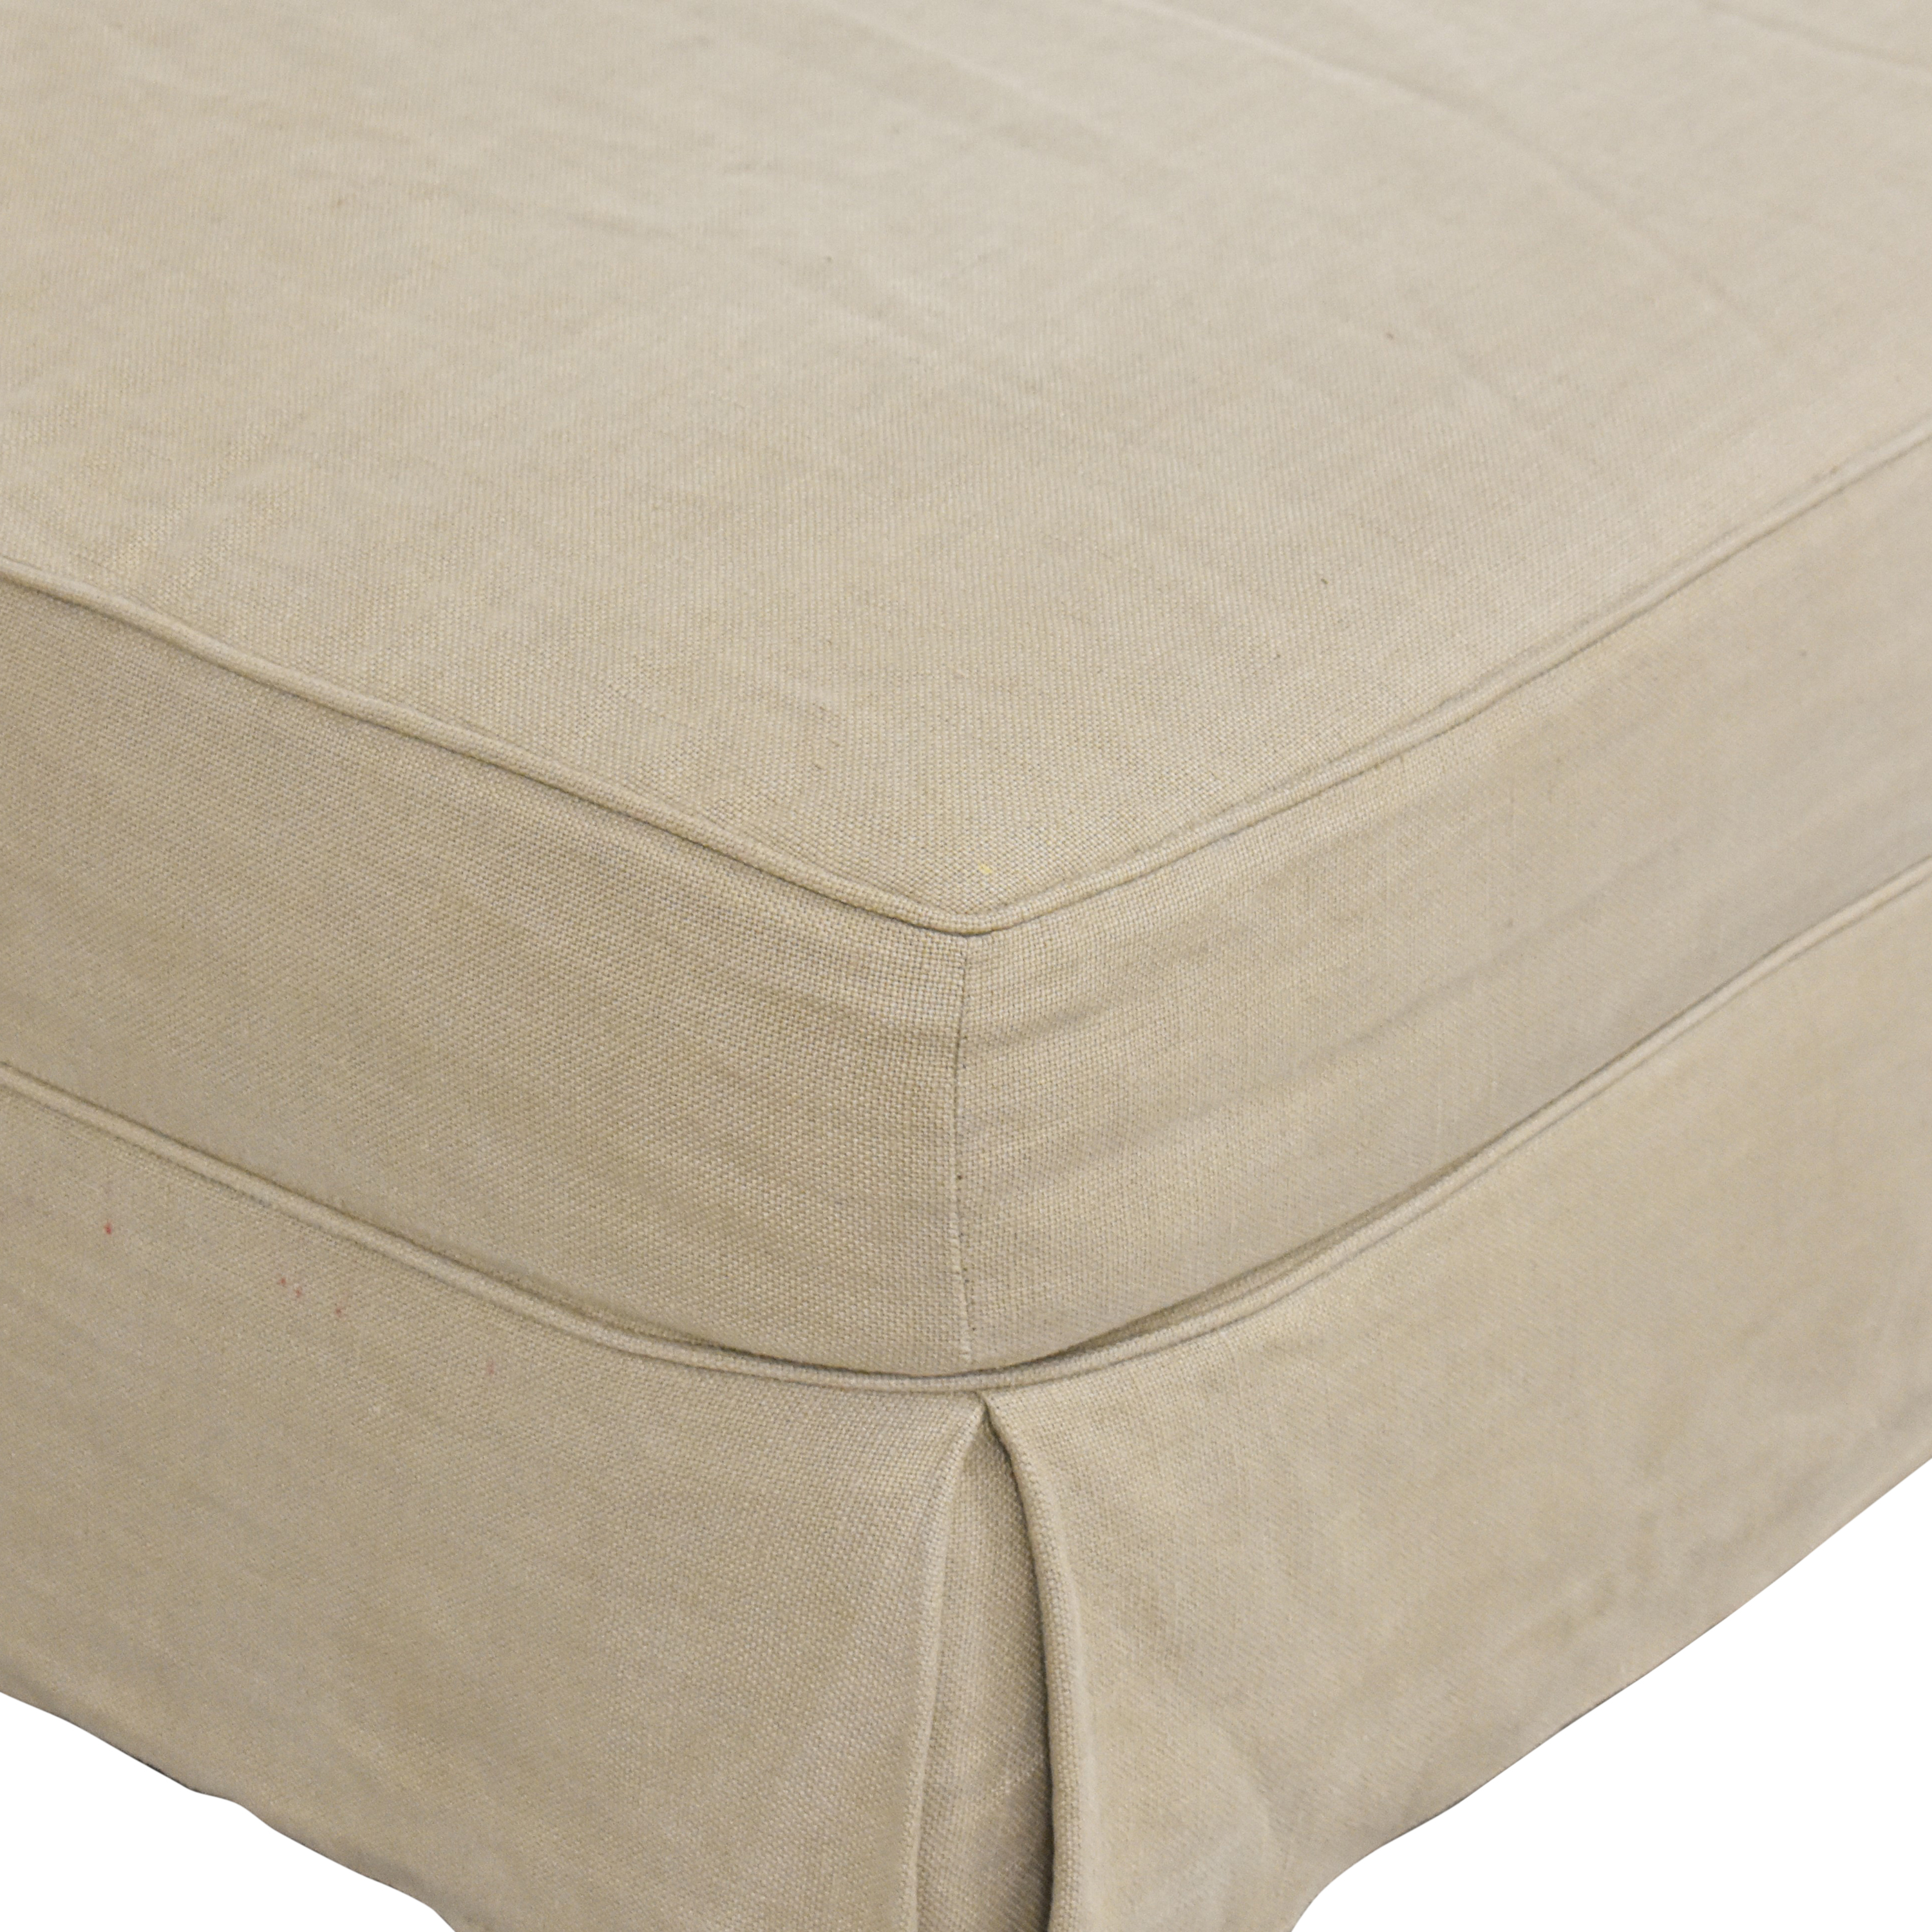 Restoration Hardware Restoration Hardware Grand Scale Roll Arm Slipcovered Ottoman used